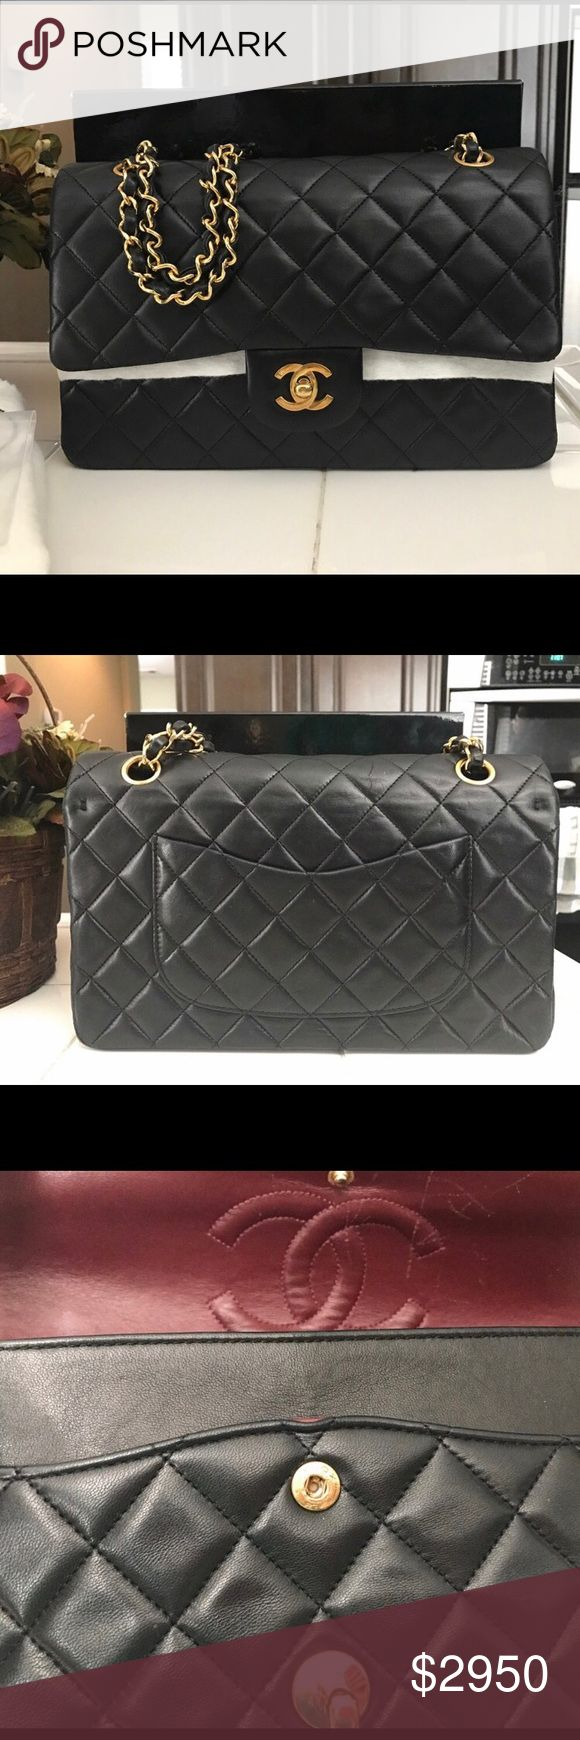 Authentic Classic Chanel medium flap bag 100 percent authentic, smoke free home, great condition, comes with box, dust bag, & authenticity card! CHANEL Bags